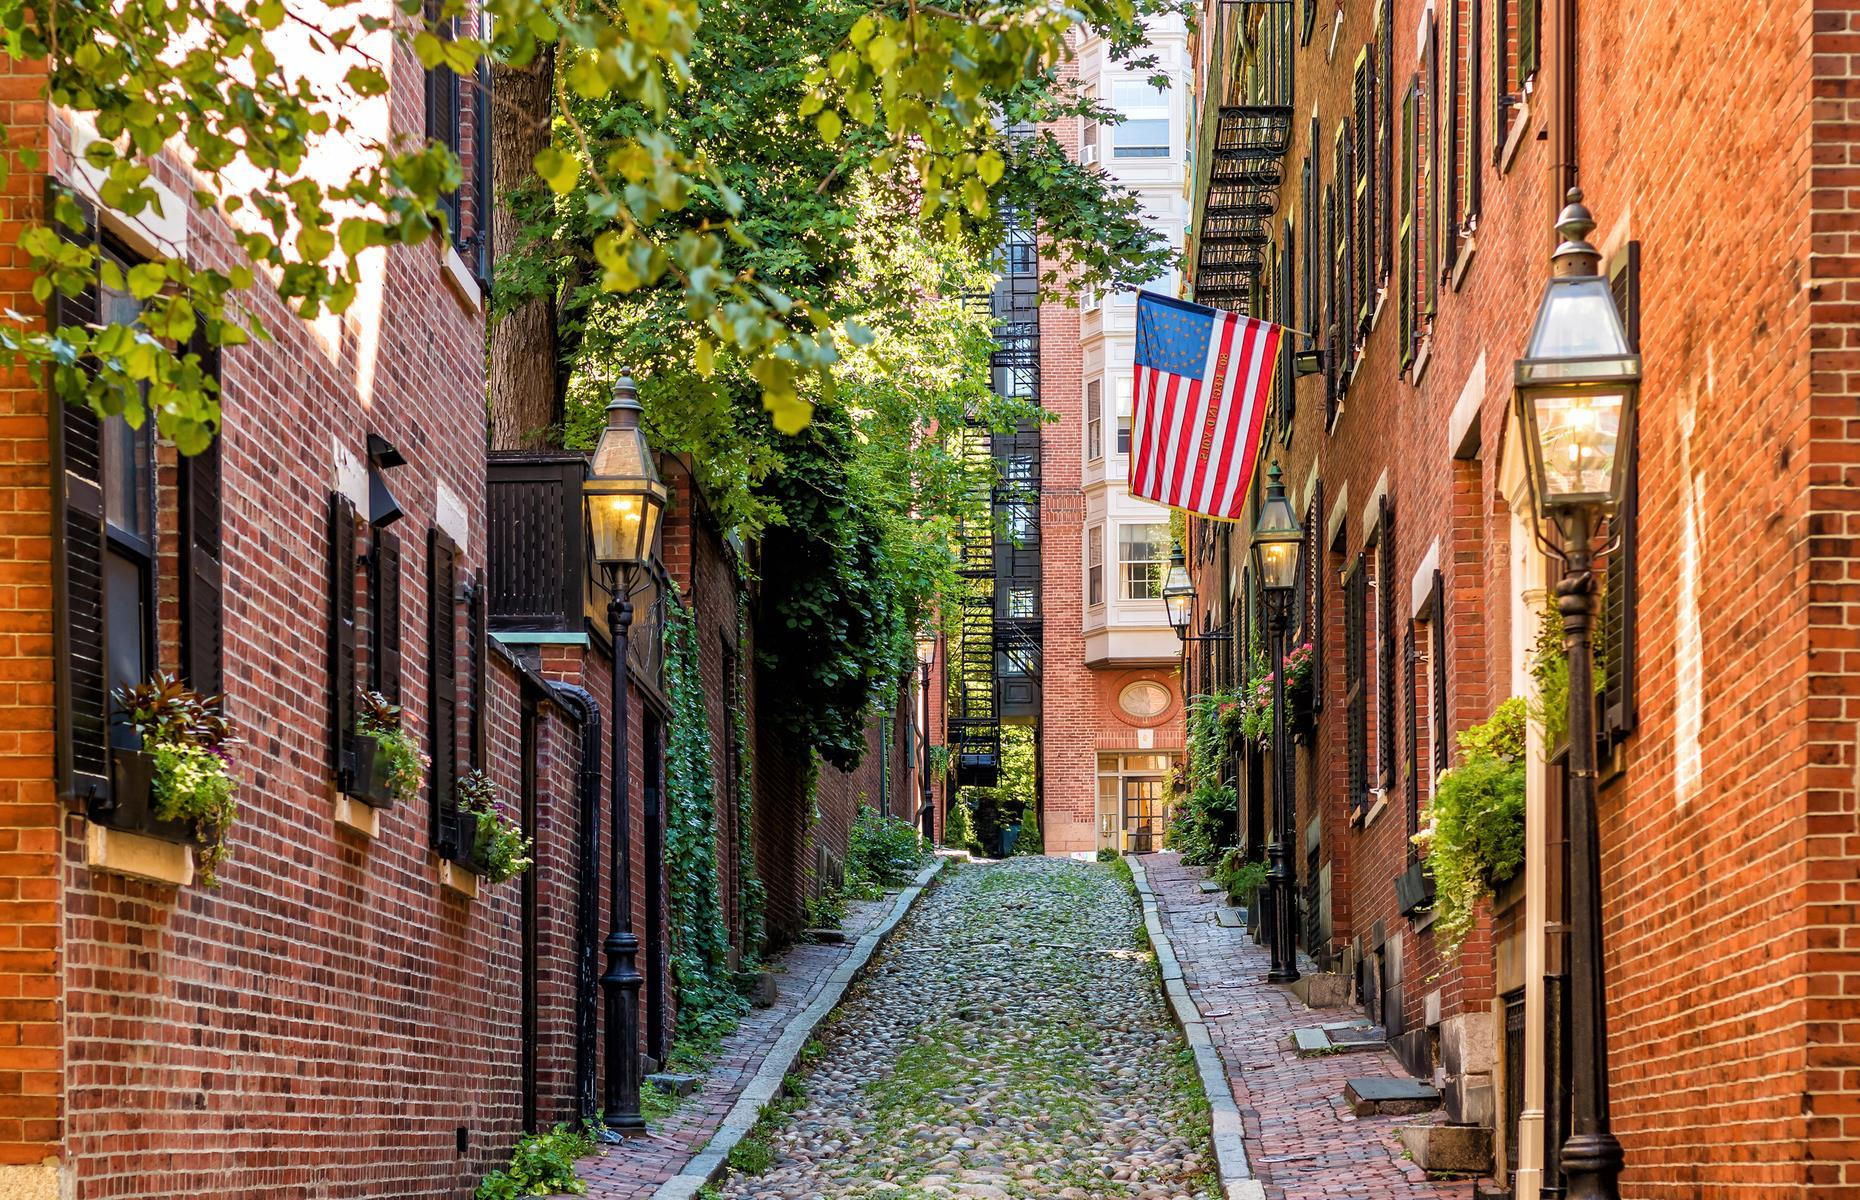 Slide 11 of 41: The city has some characterful old neighborhoods too: Beacon Hill was home to the first descendants of the early English settlers known as the Boston Brahmin. The picturesque area, with its red-brick row houses and gas-lit narrow streets, remains an elite enclave and is well worth a wander. As is the historic harbor, setting for the infamous Boston Tea Party. The informative and interactive Boston Tea Party Ships & Museum (now open) brings to life the story of the protest that helped start the American Revolution.